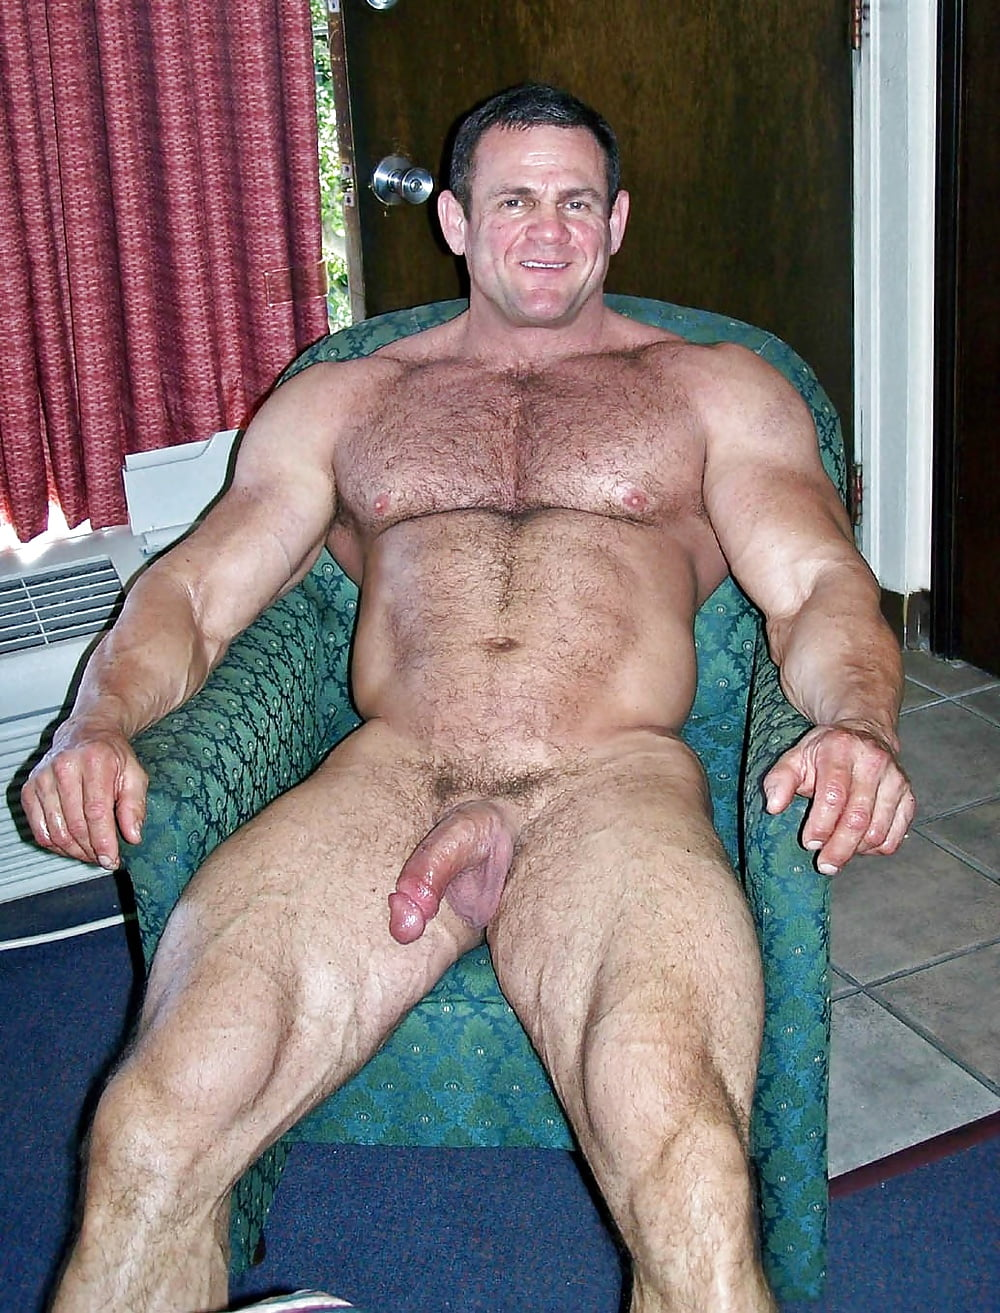 Nude Muscular Hairy Men With Big Hard Cocks